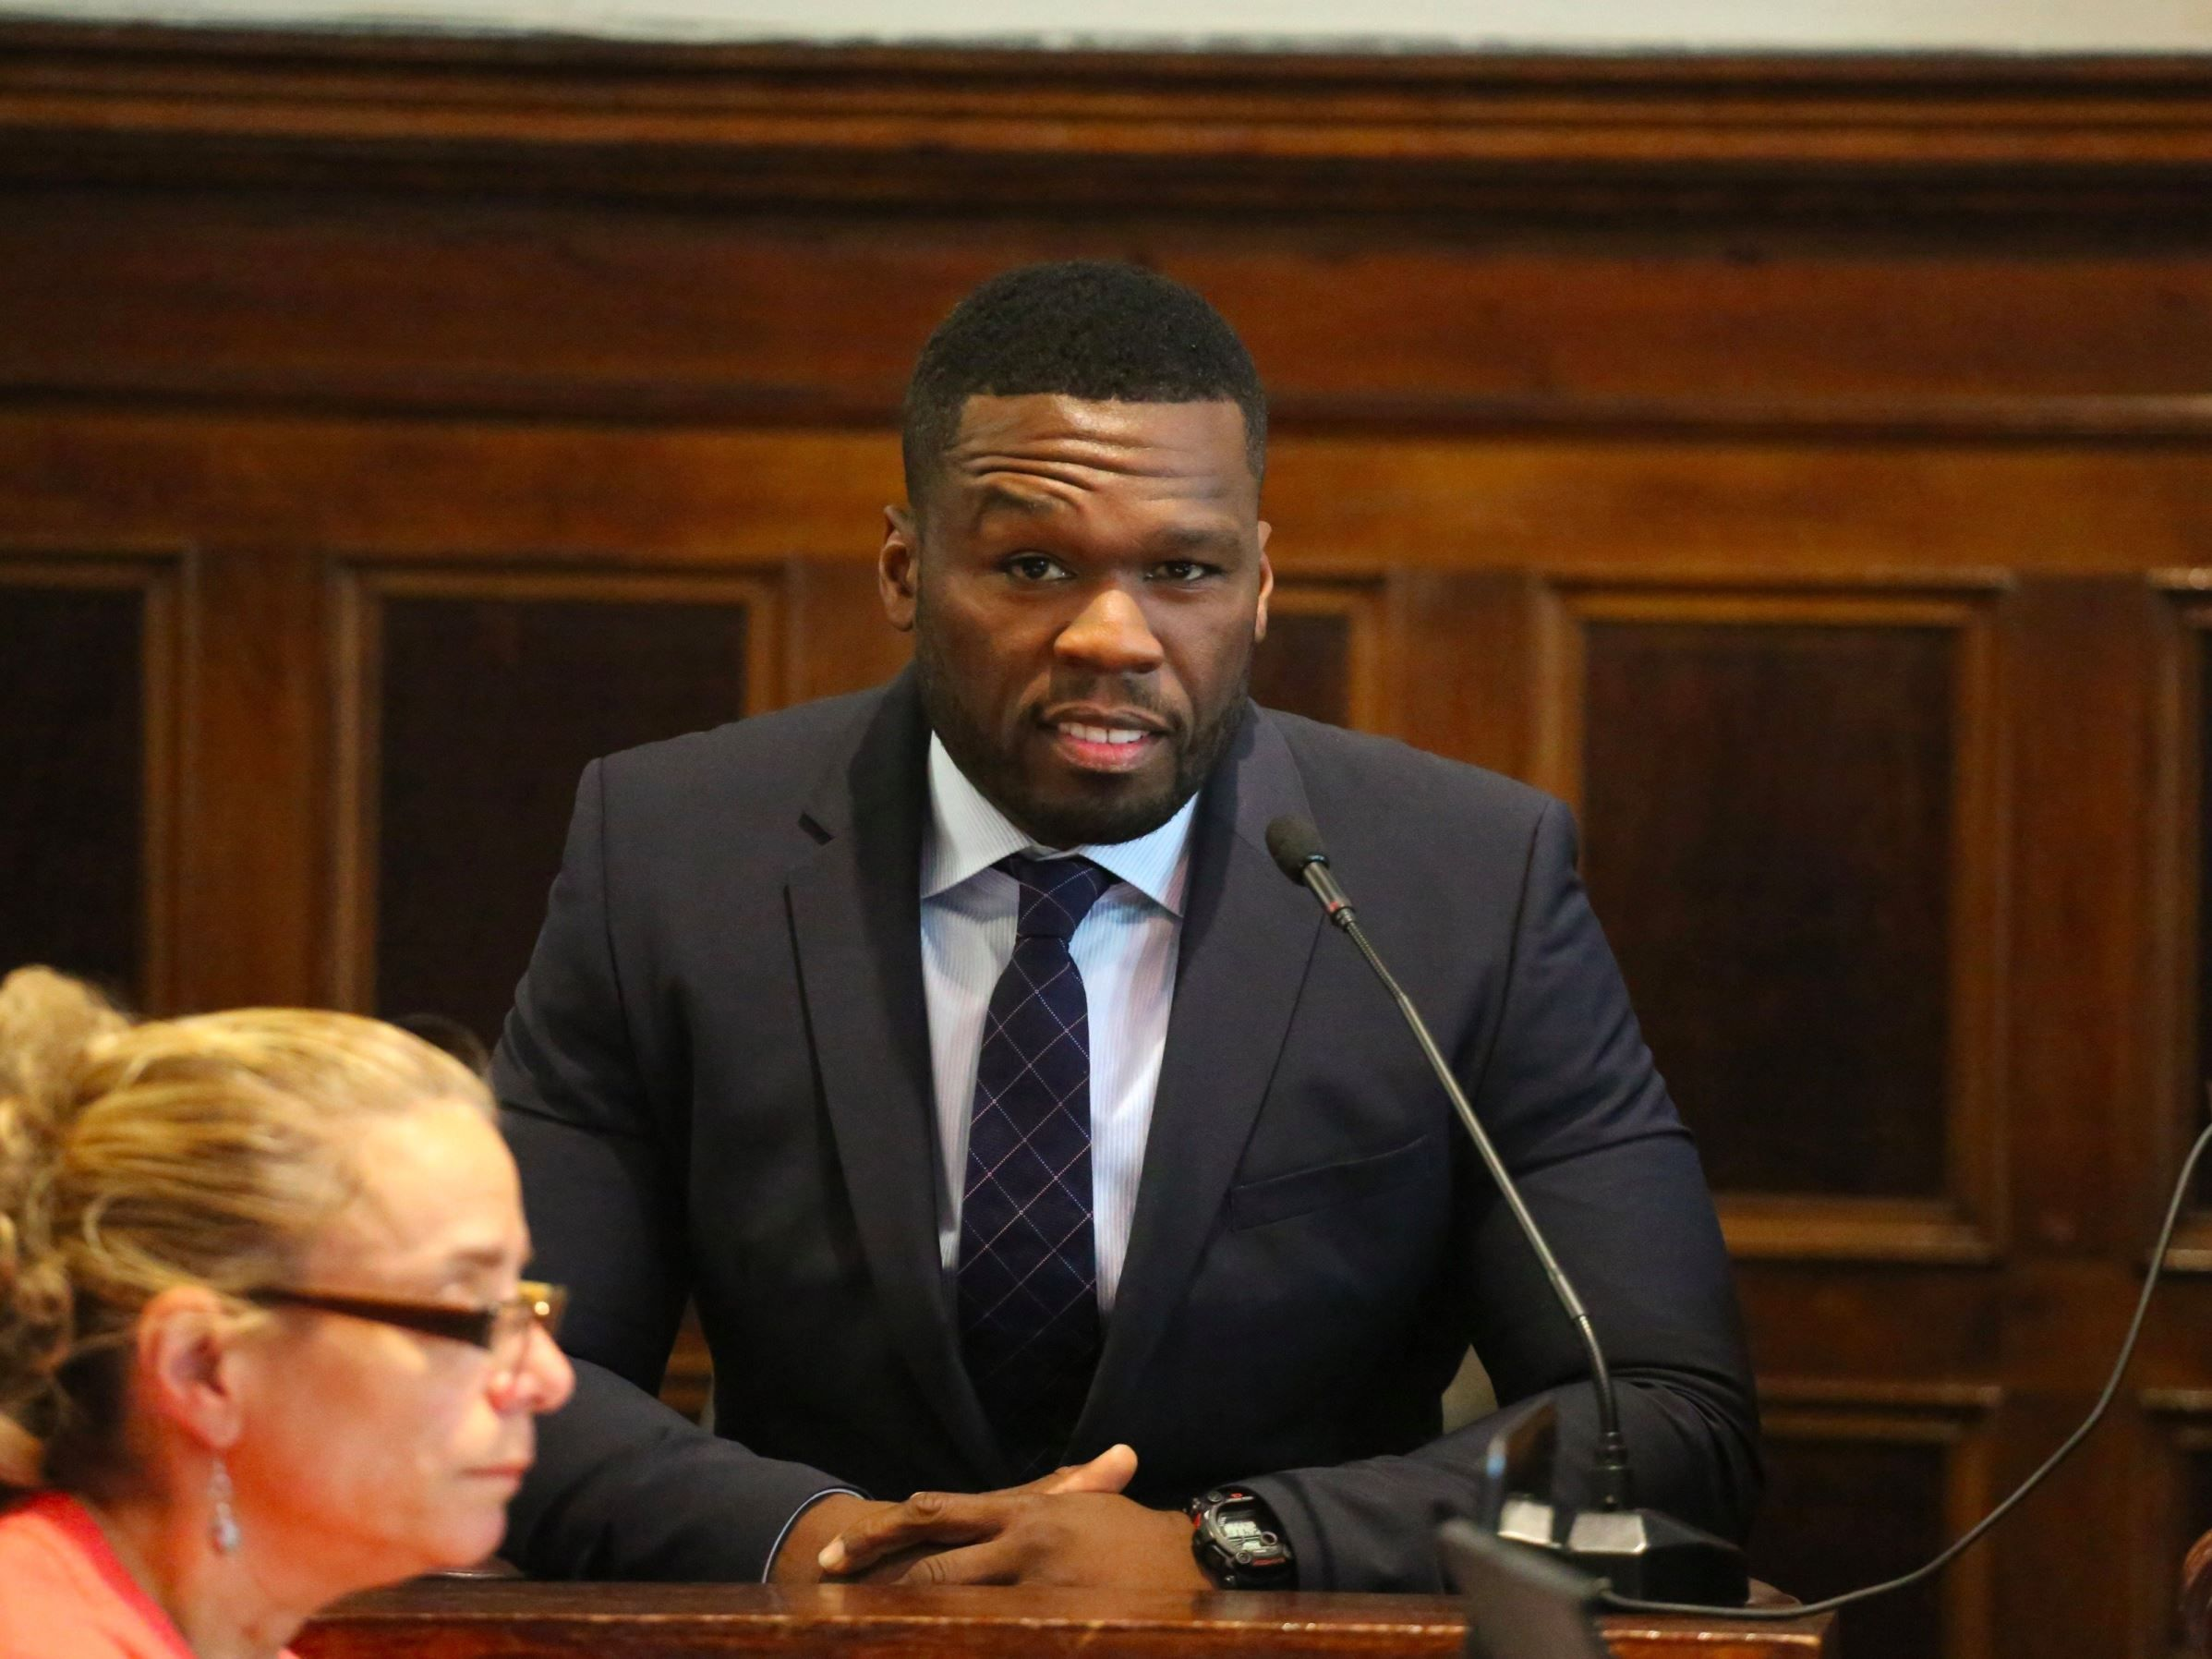 Heres how 50 cent says his fortune of about 25 million